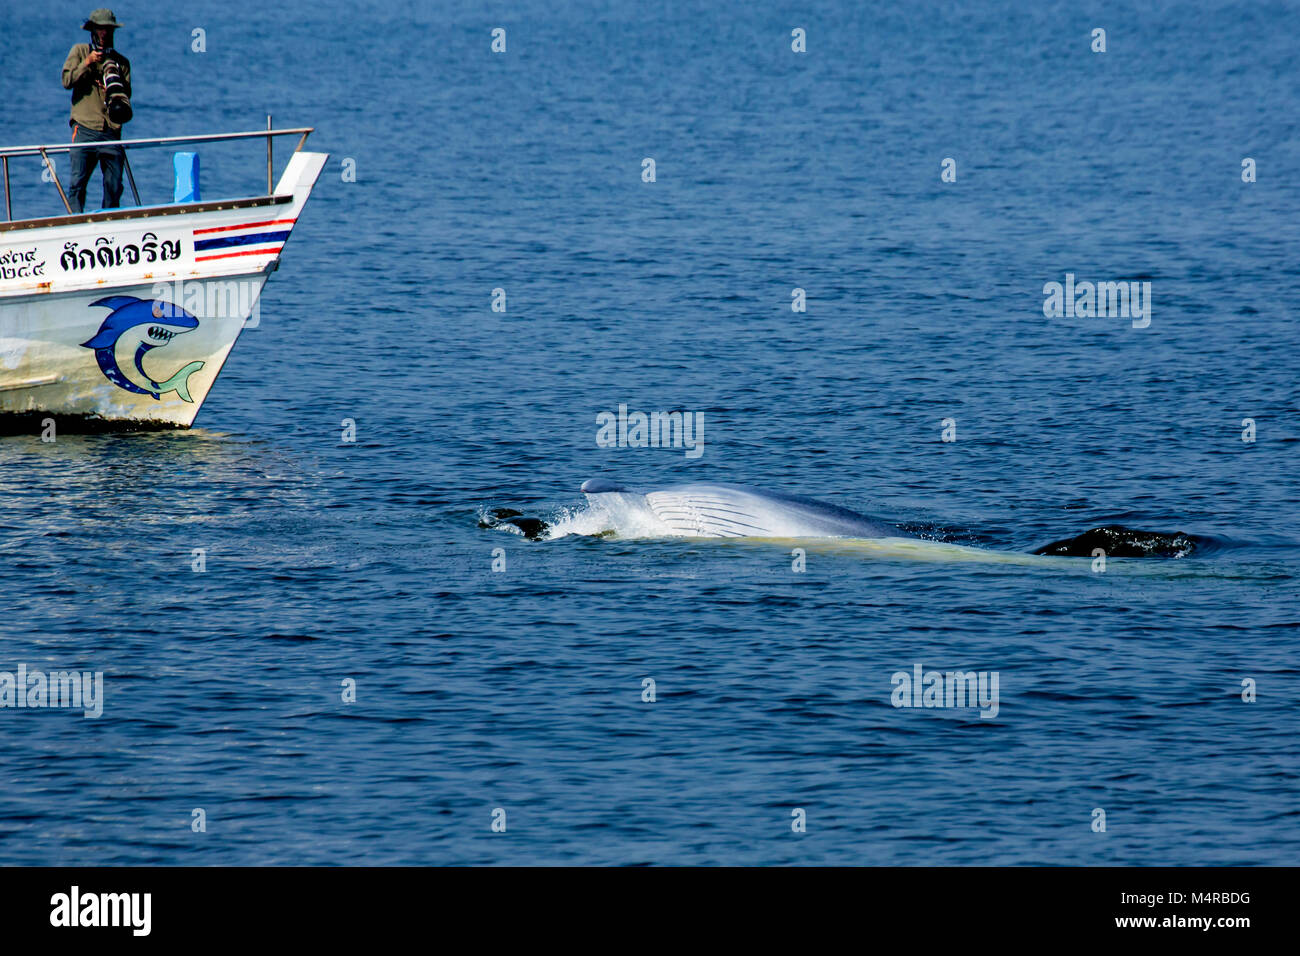 Eden's Whale (Balaenoptera edeni), a pending split from Bryde's Whale, doing people watching - Stock Image